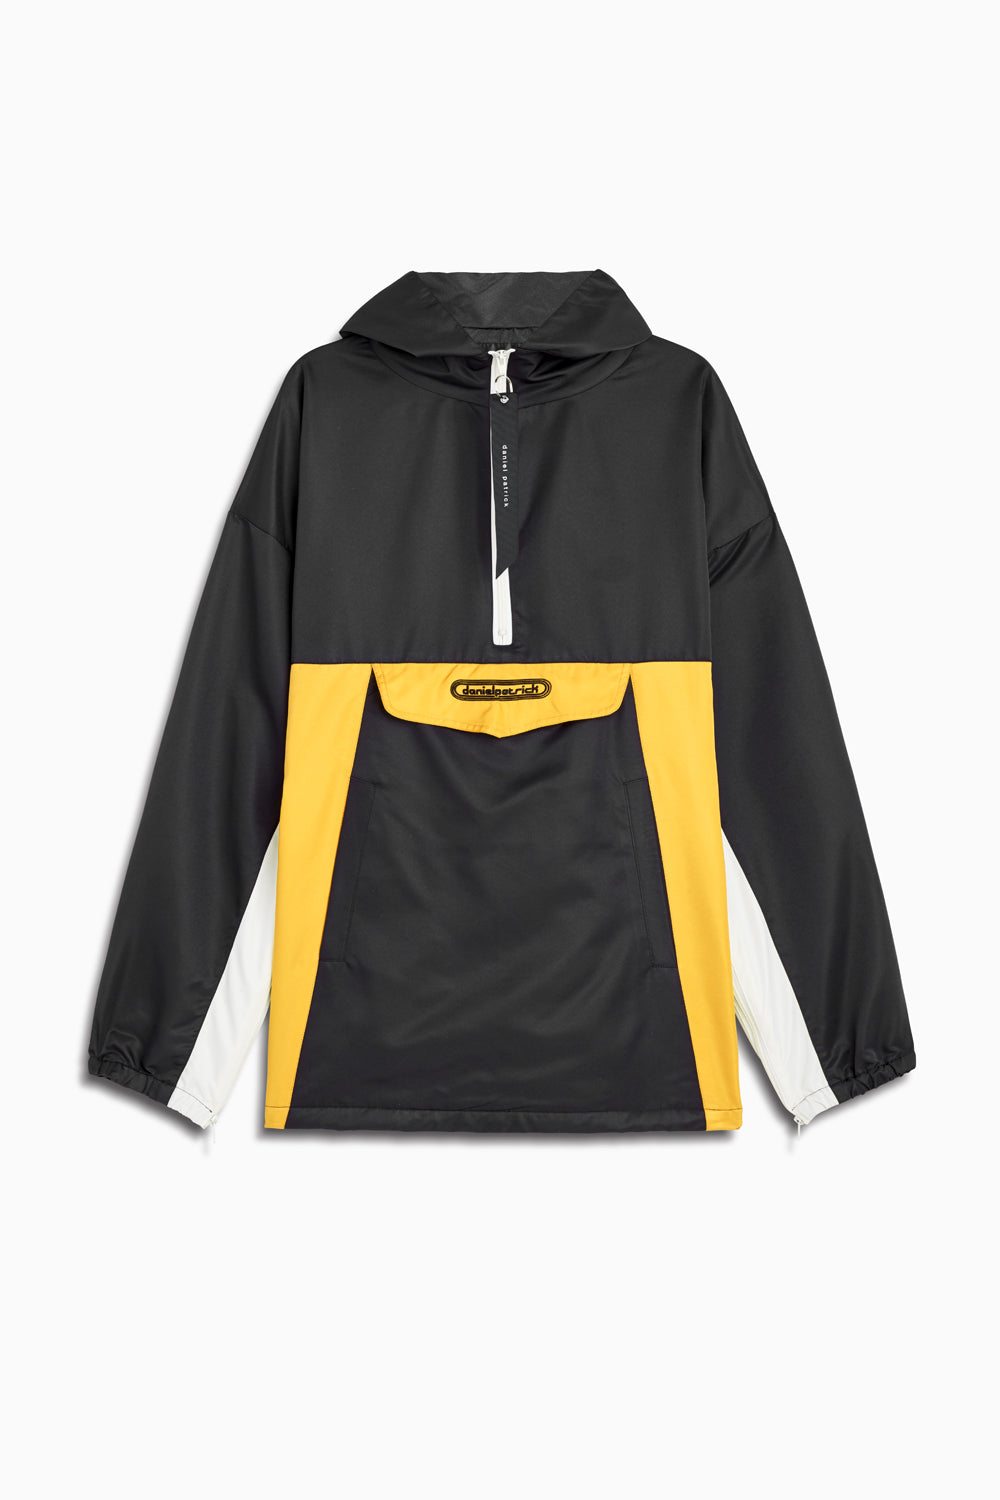 anorak windbreaker in black/yellow/ivory by daniel patrick